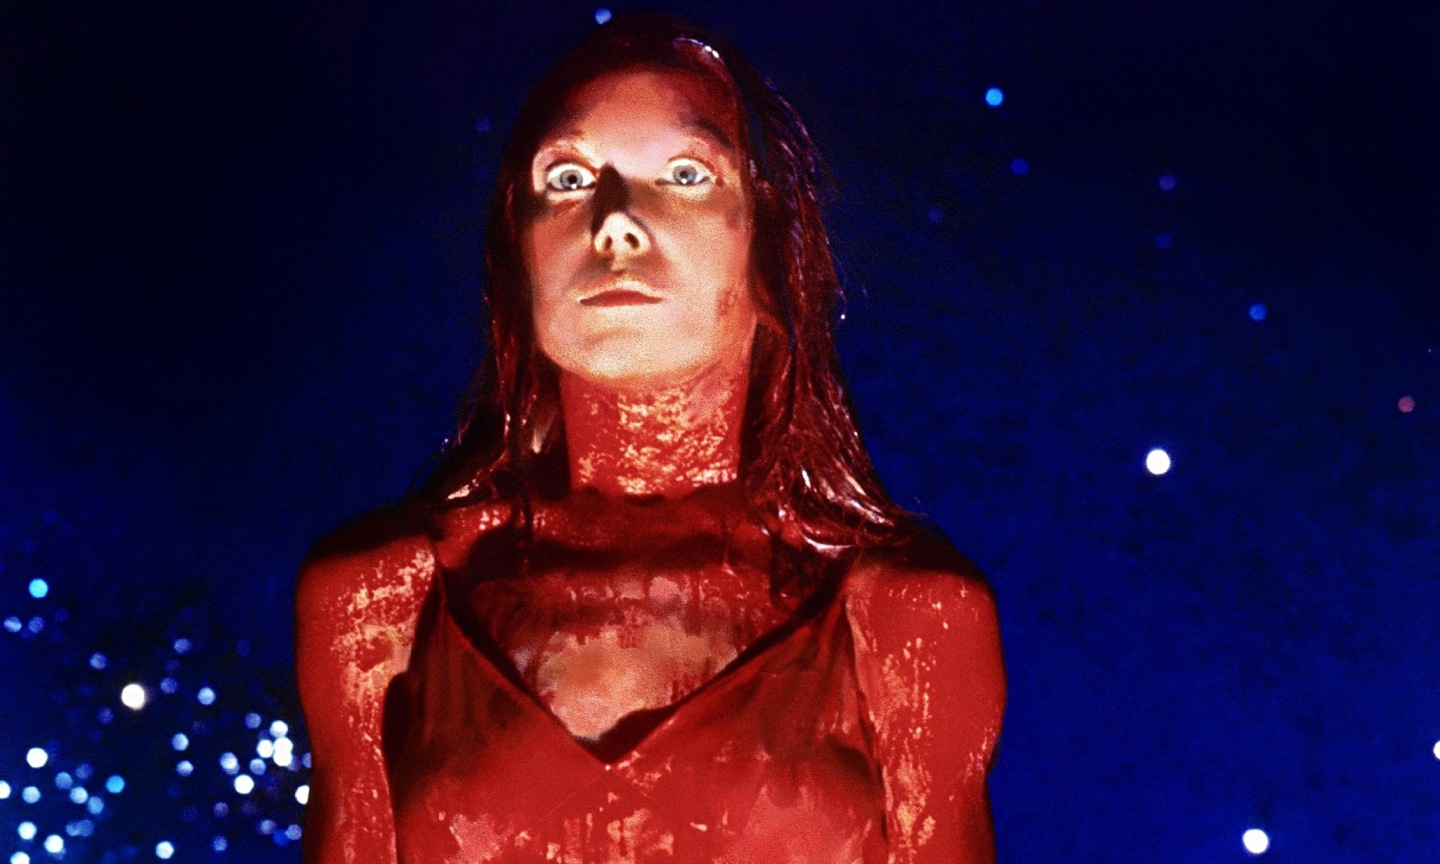 6 Scary Movies That Helped Shape Jenny Hval's <i>Blood Bitch</i>